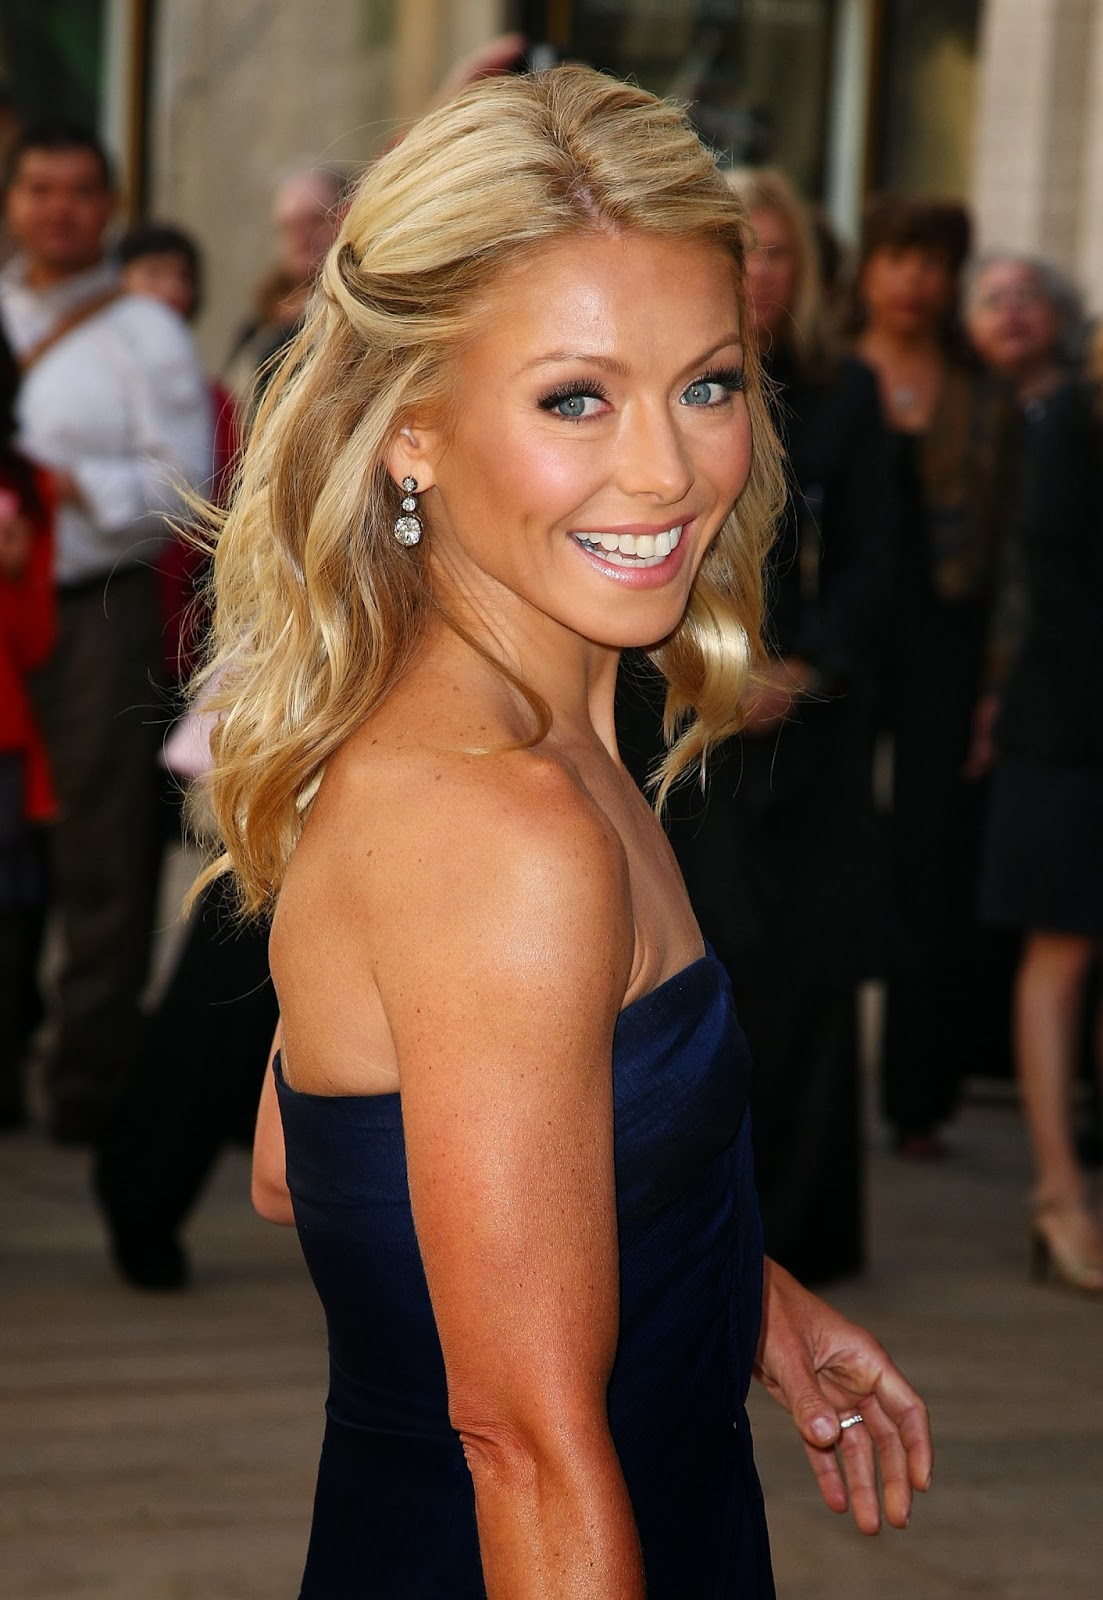 Kelly Ripa Sexy Pics Kelly Ripa Hot Photos Kelly Ripa Images Kelly